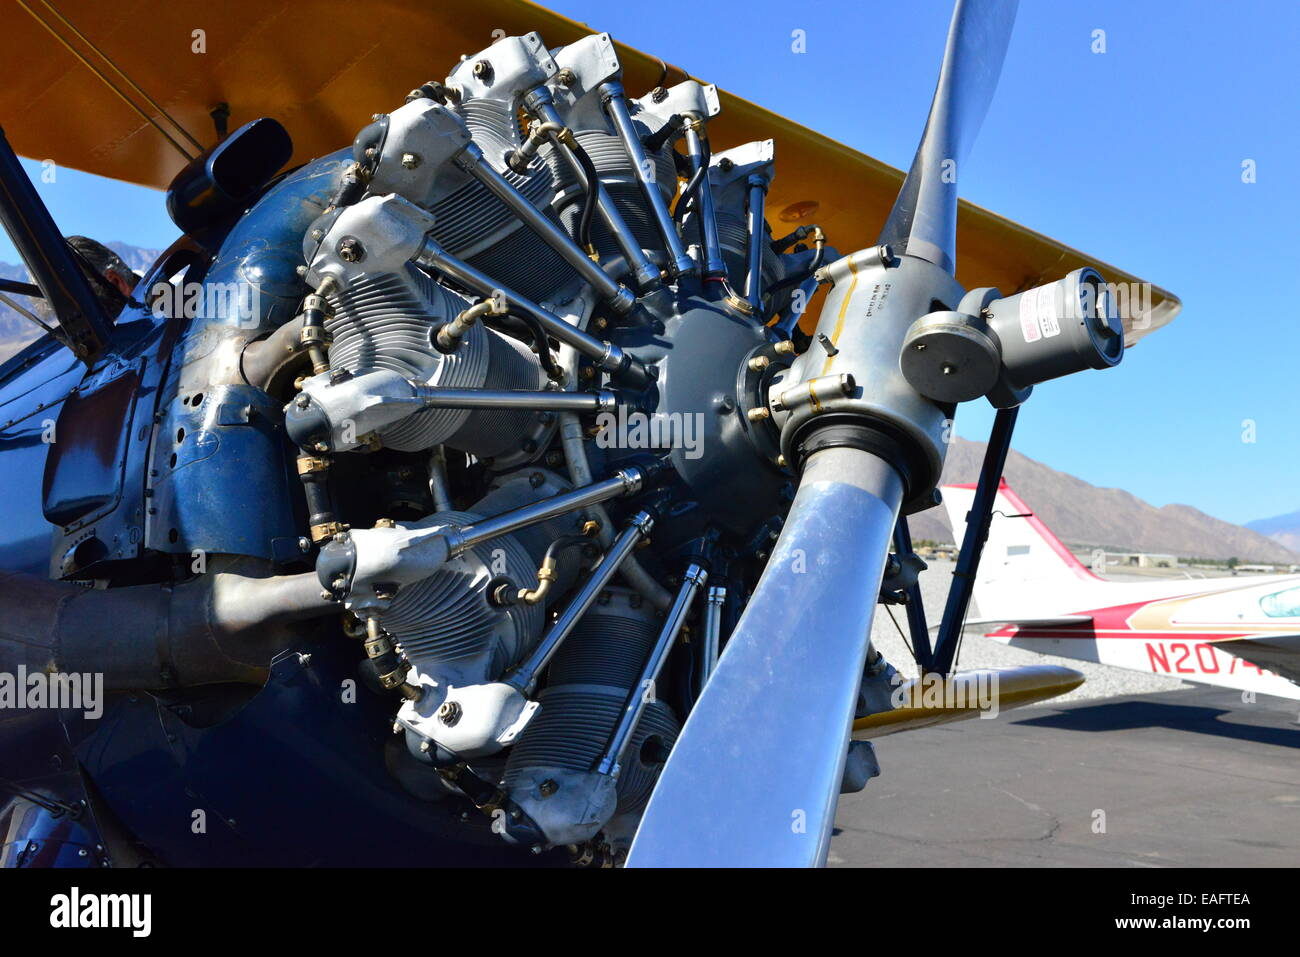 A Boeing Stearman at Palm Springs Airport, California. Stock Photo